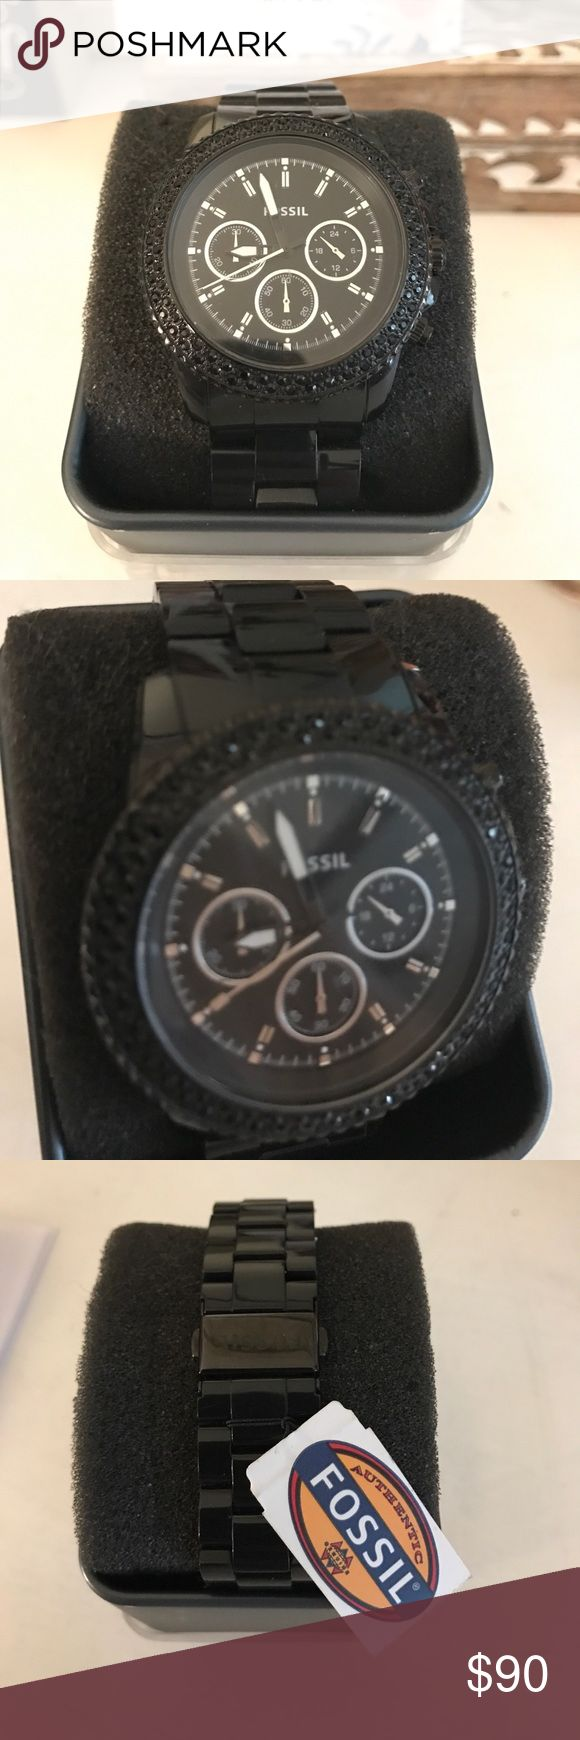 Black fossil watch brand new ! Never worn. Black fossil watch brand new ! Never worn. Black w black rhinestones. Original case with original price tag ($105.00) still attached ! Brand. New. Make and offer ! ;) Fossil Jewelry Bracelets